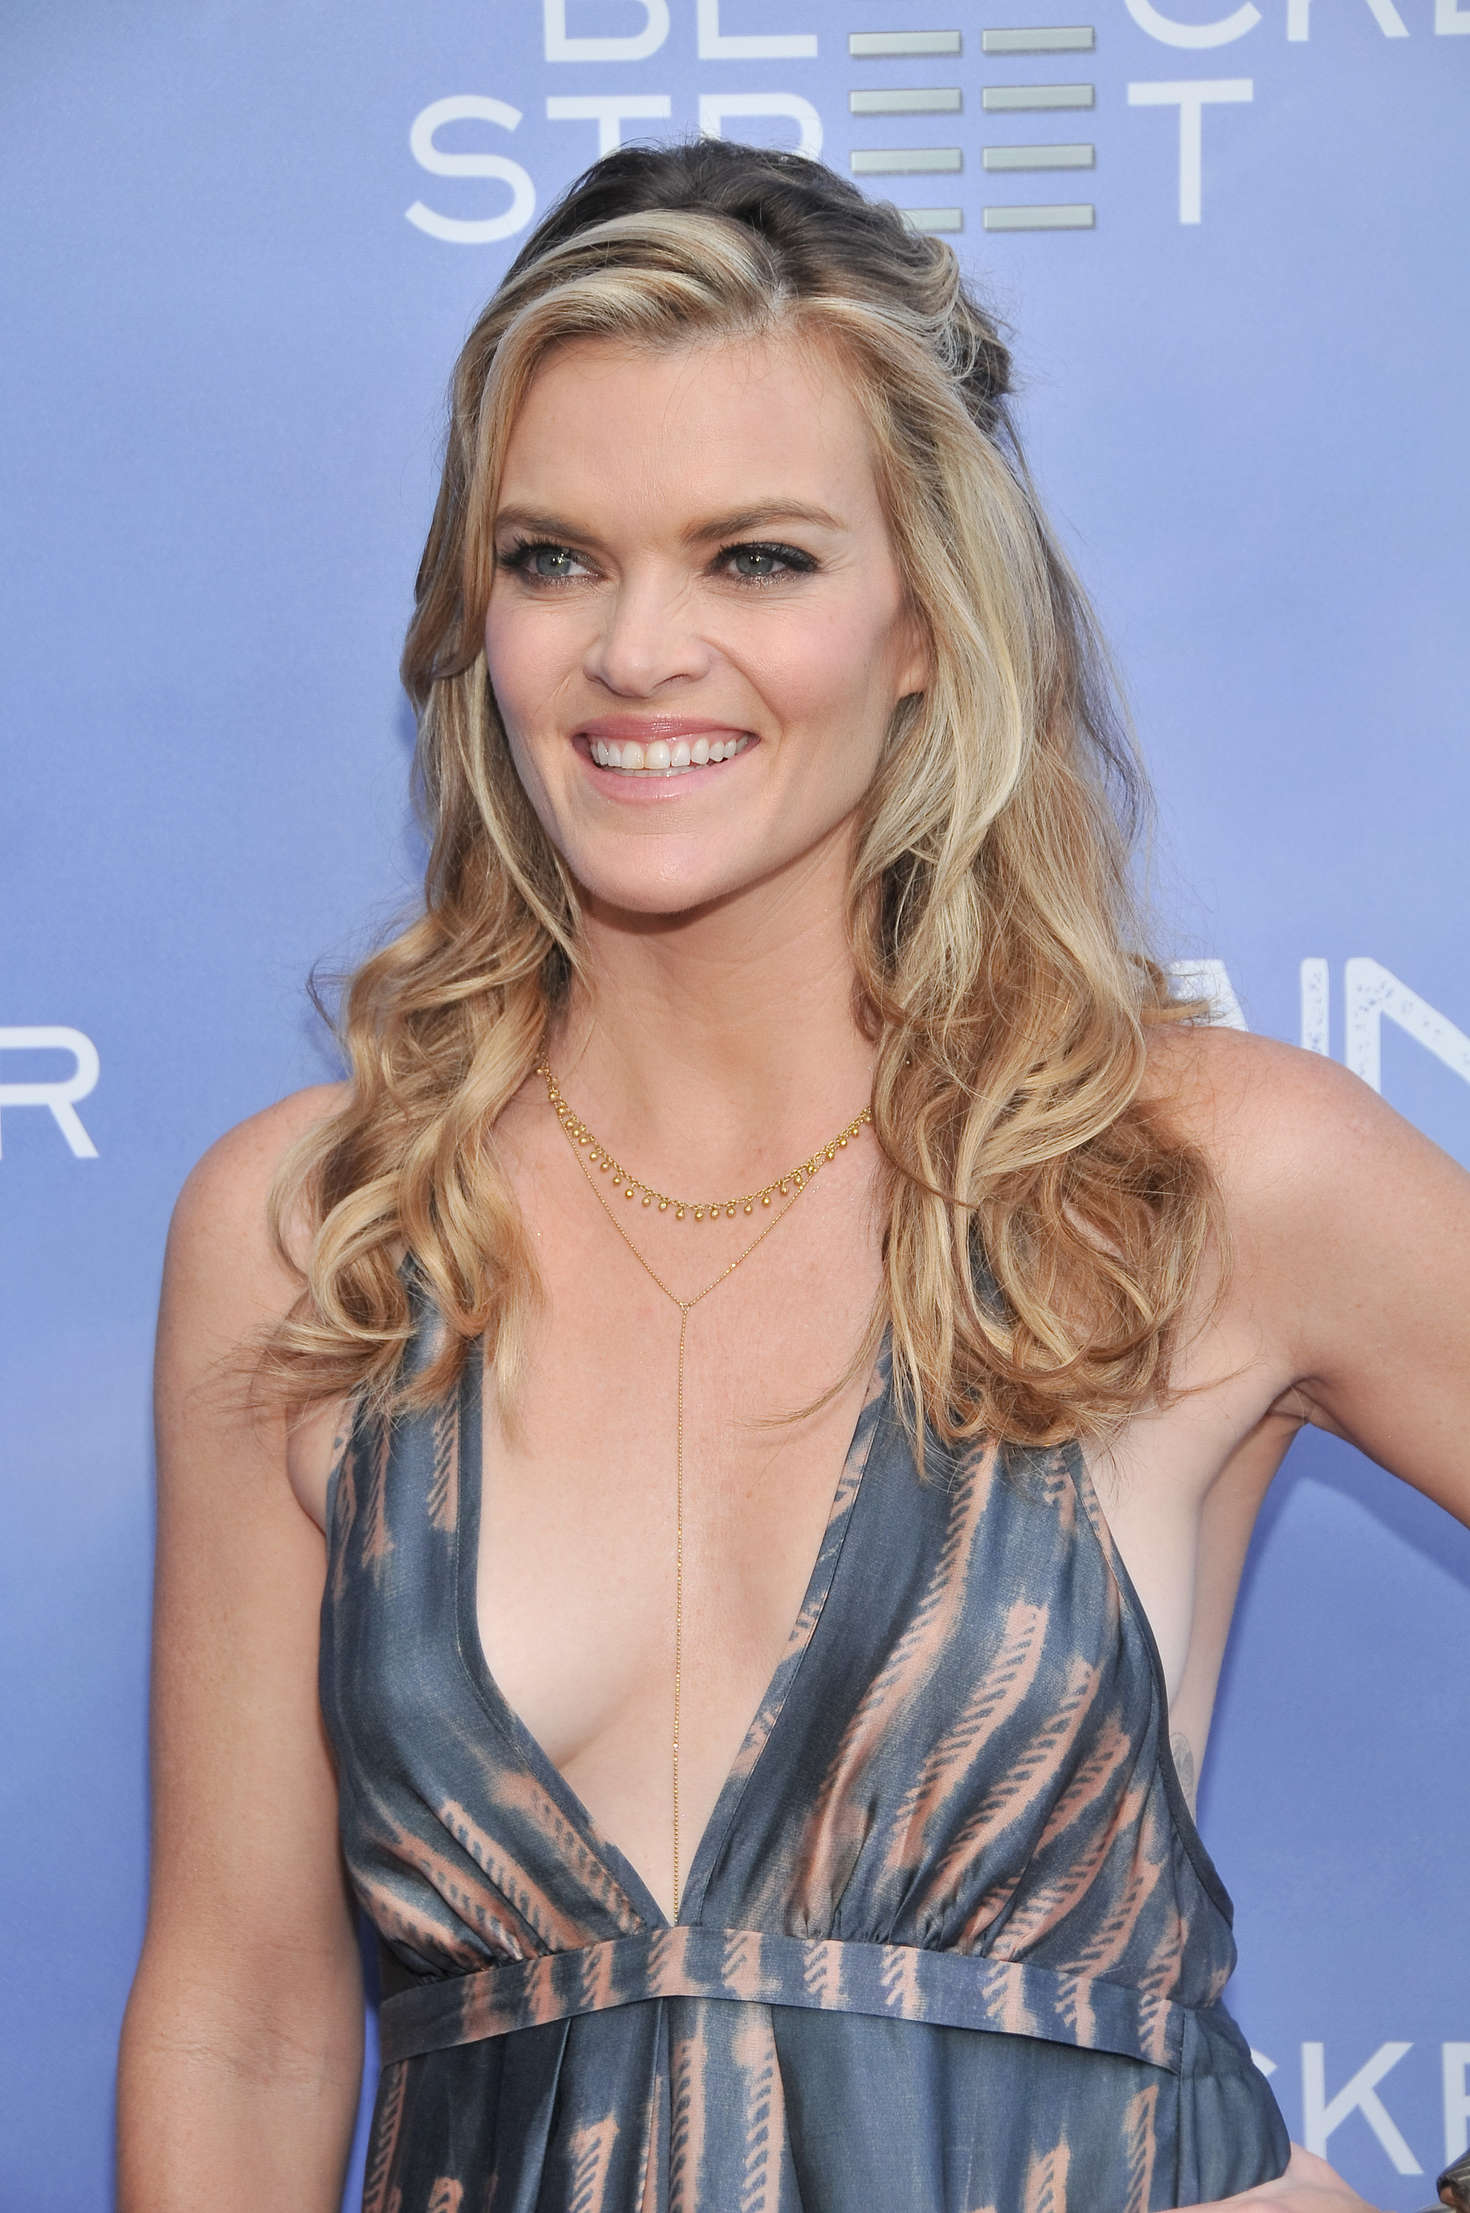 Missi pyle captain fantastic premiere in los angeles